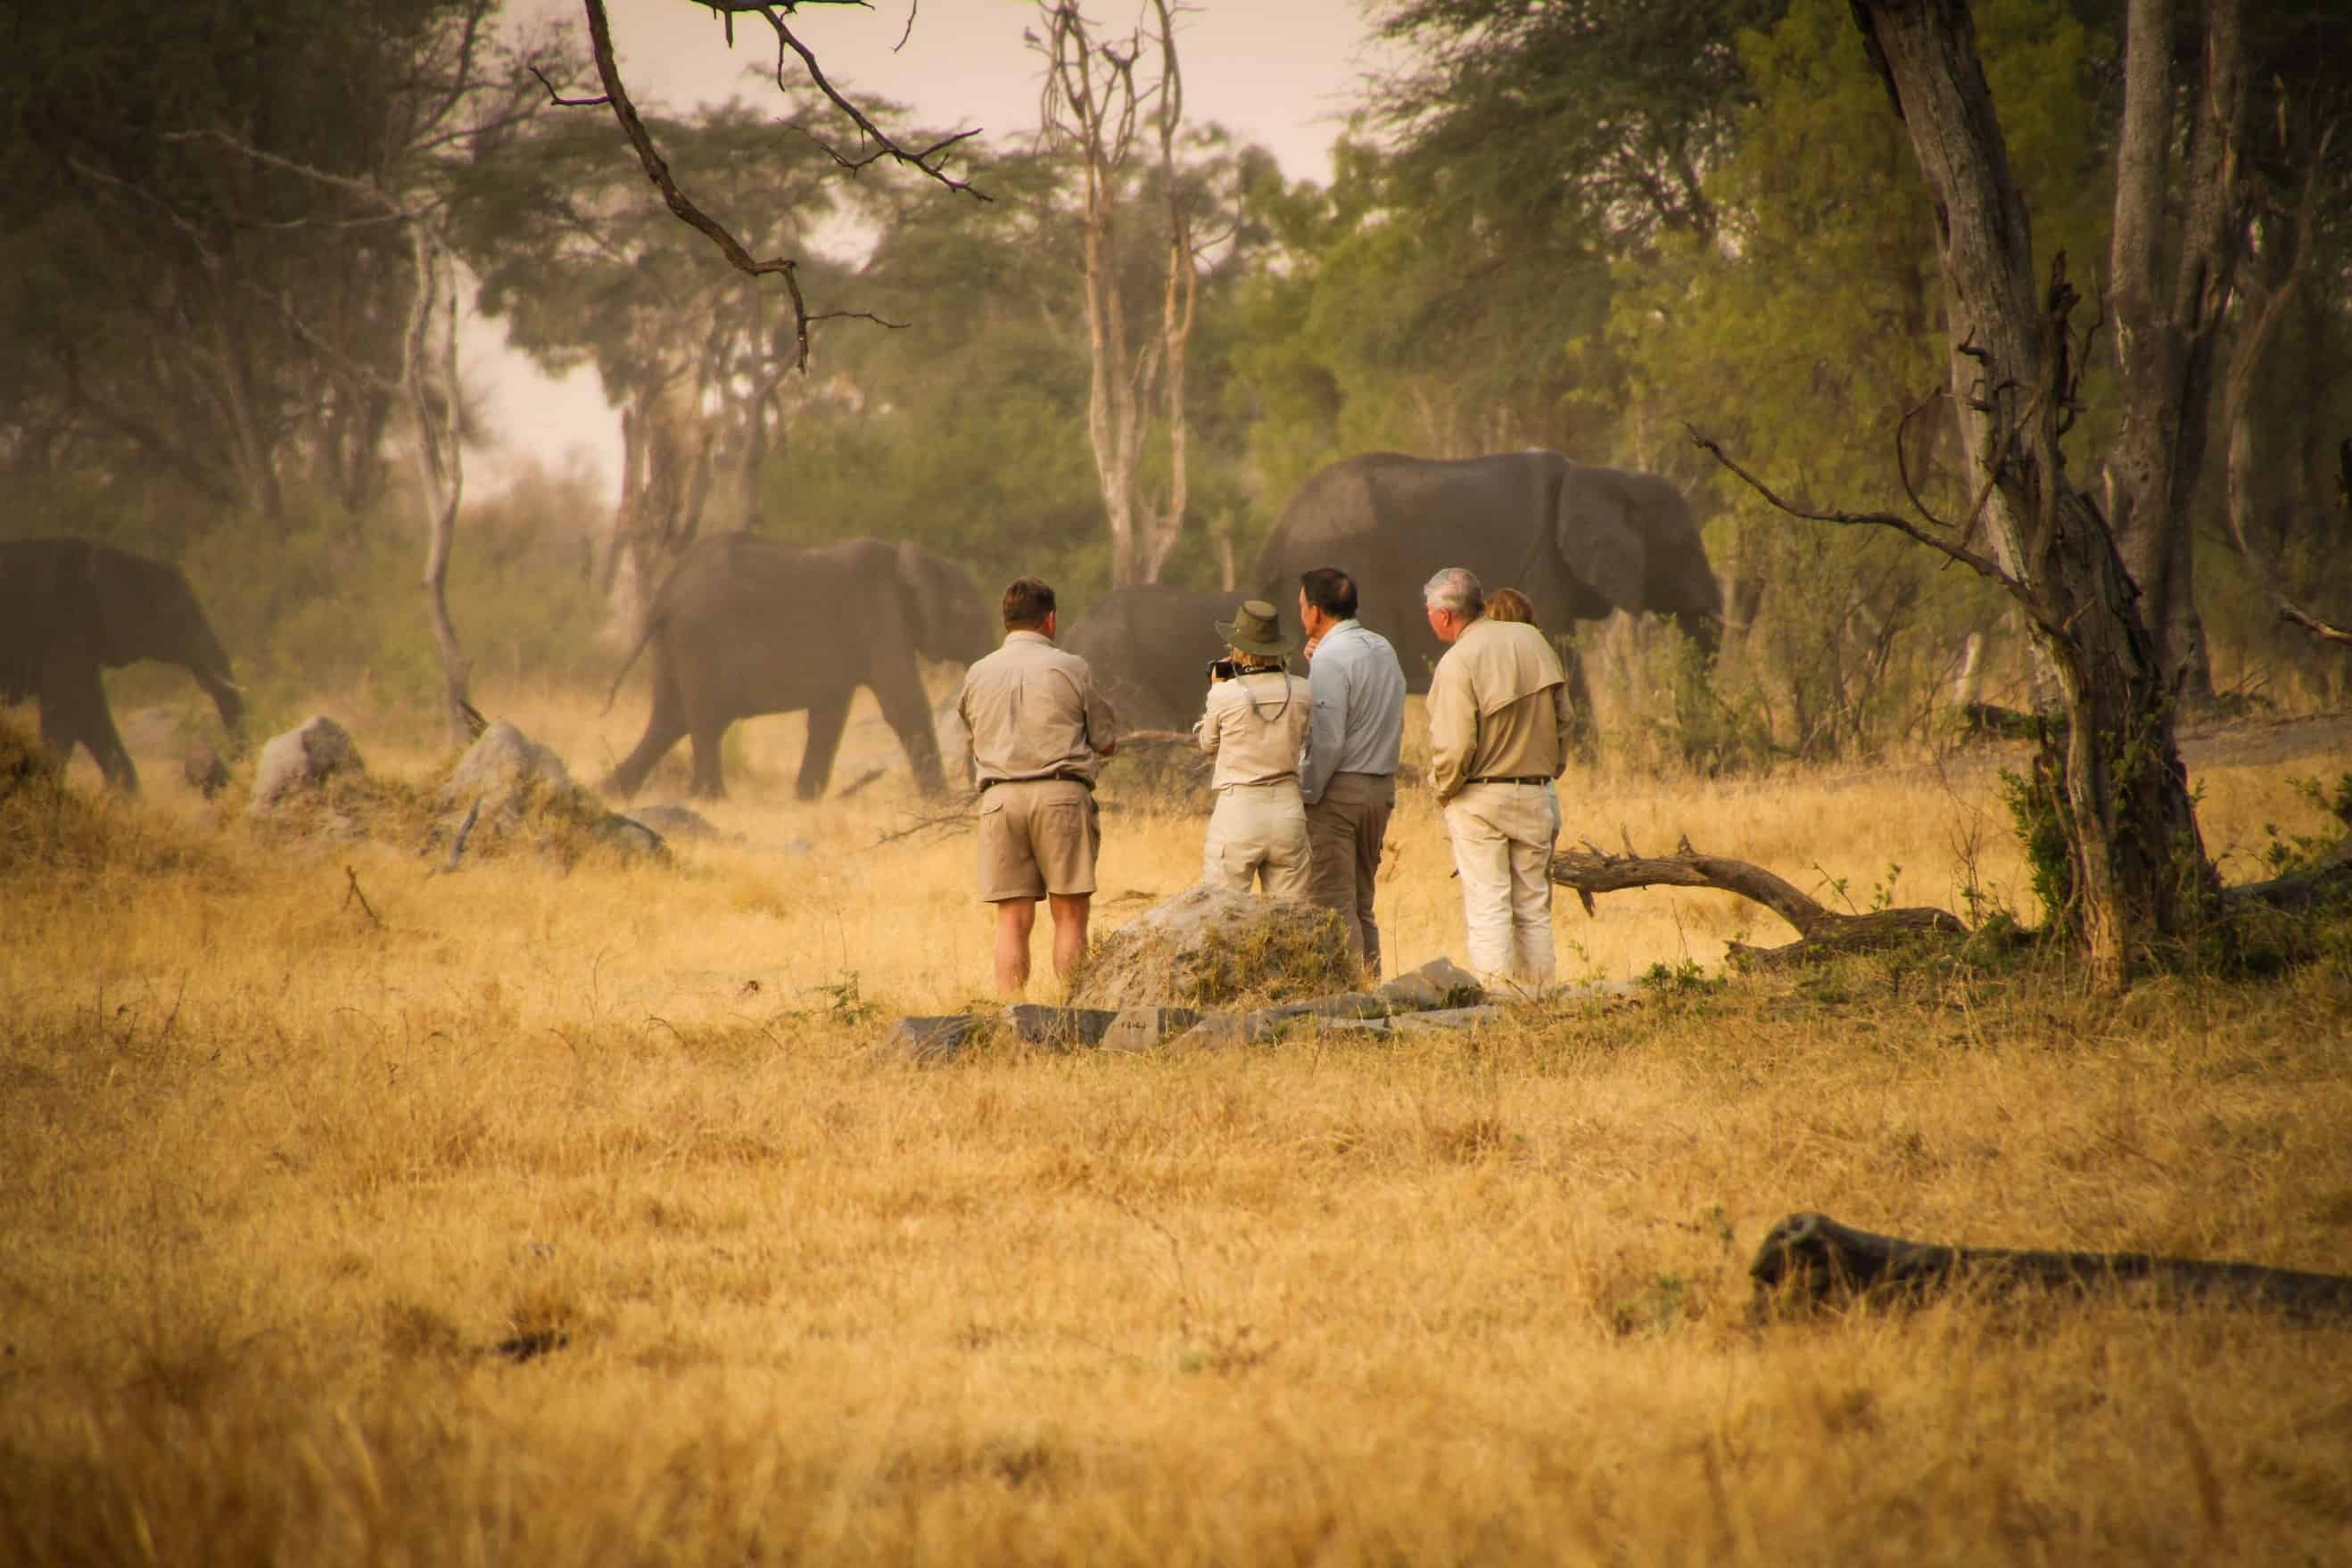 Elephants - Game Drive At The Hide Hwange National Park